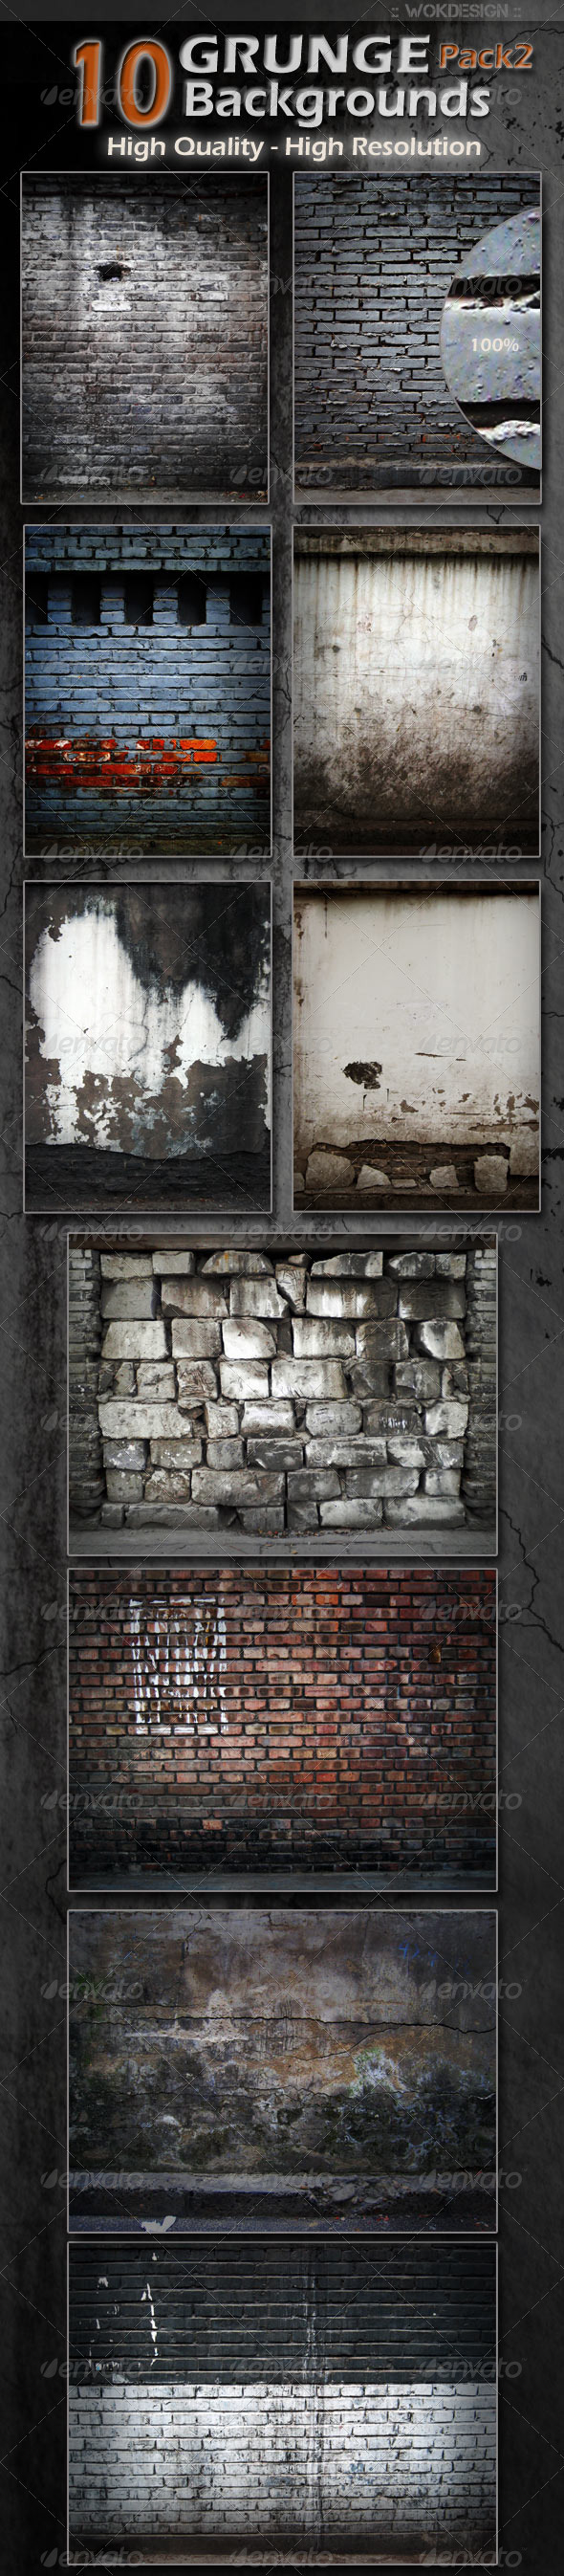 GraphicRiver 10 Grunge Backgrounds Pack 2 1498345